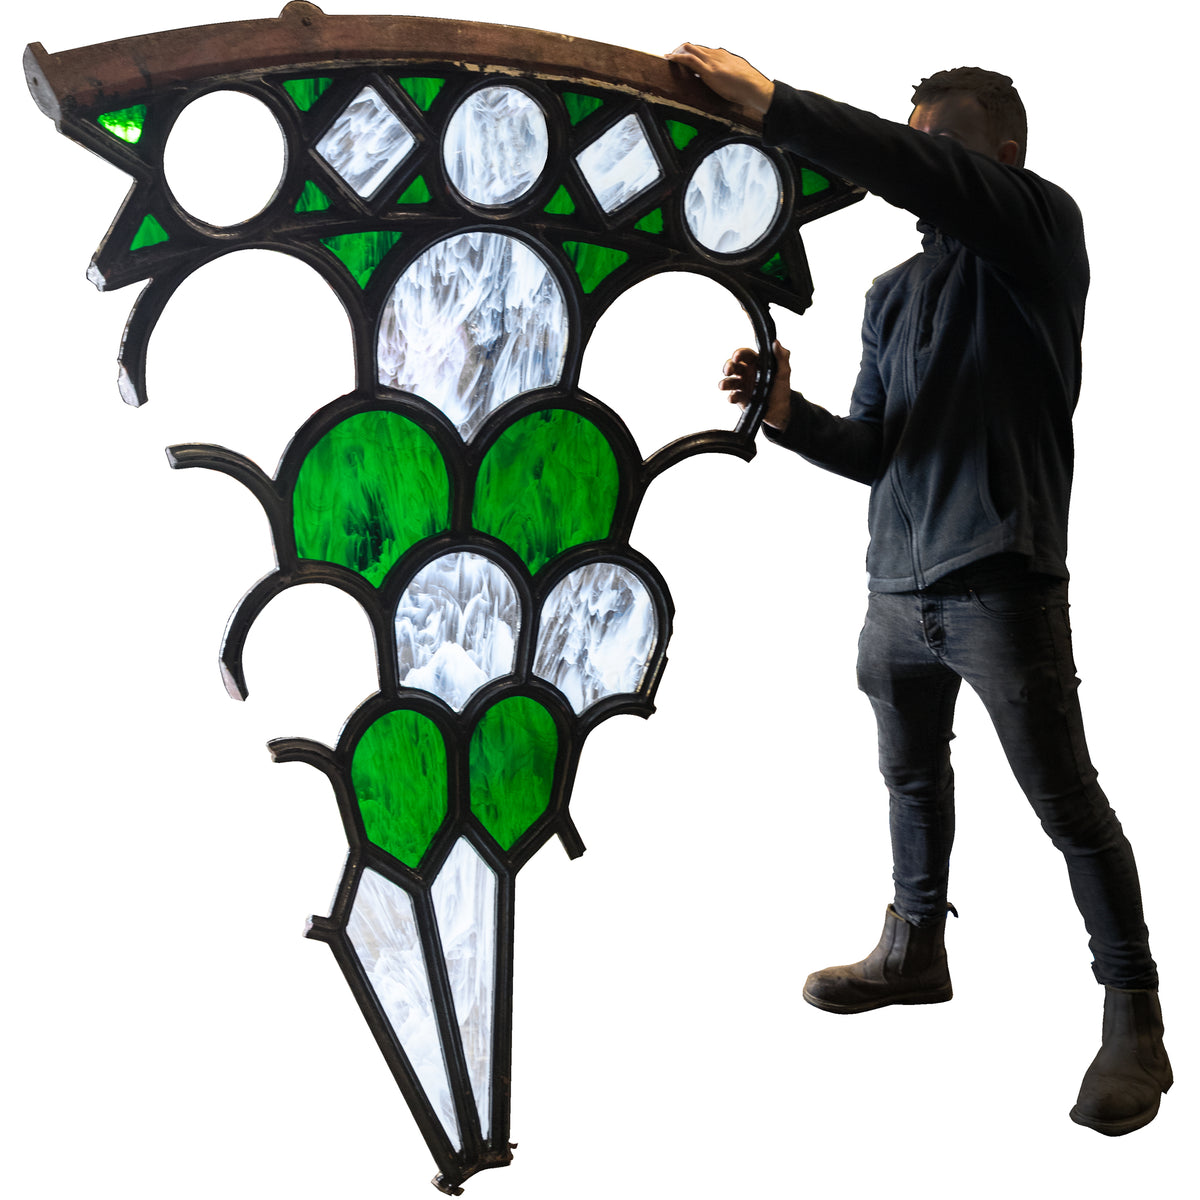 Magnificent Antique Domed Cast Iron Skylight with Stained Glass (3.5m) | The Architectural Forum